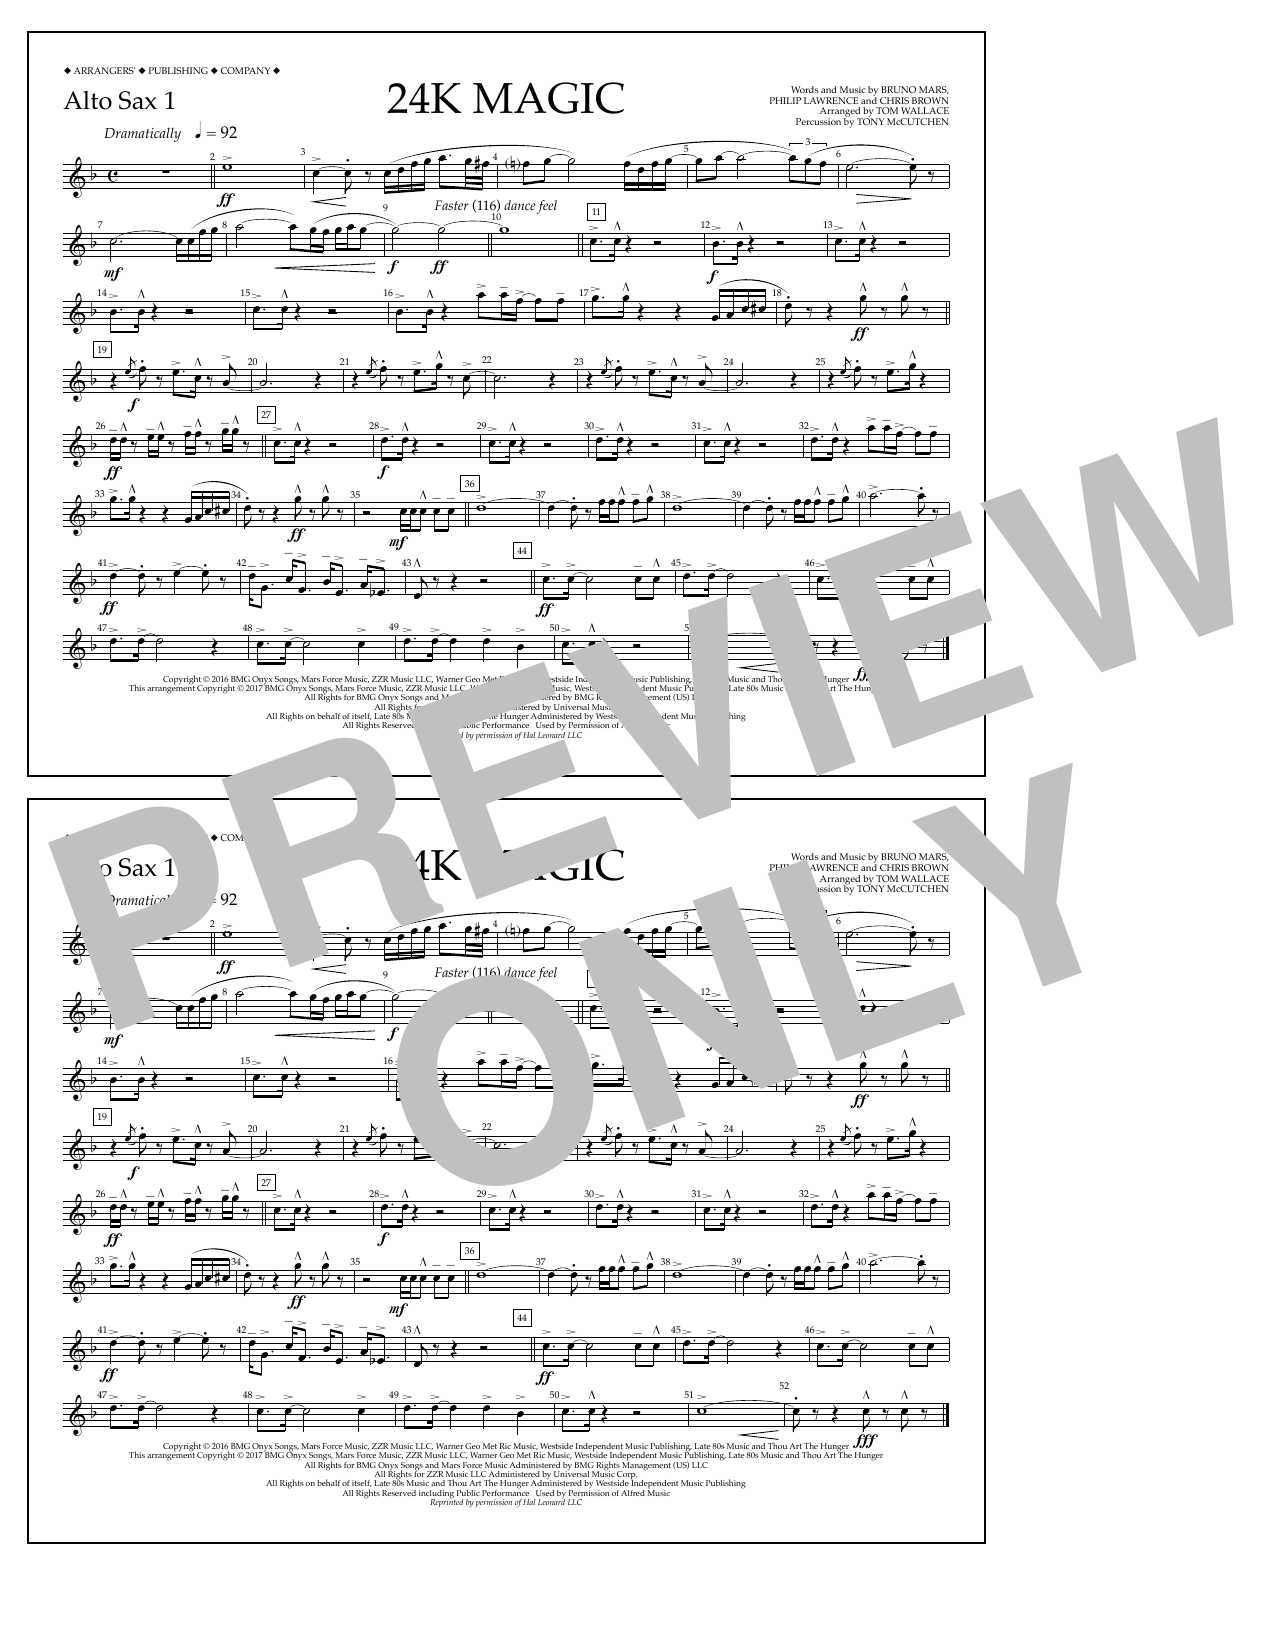 Tom Wallace 24K Magic - Alto Sax 1 sheet music preview music notes and score for Marching Band including 1 page(s)